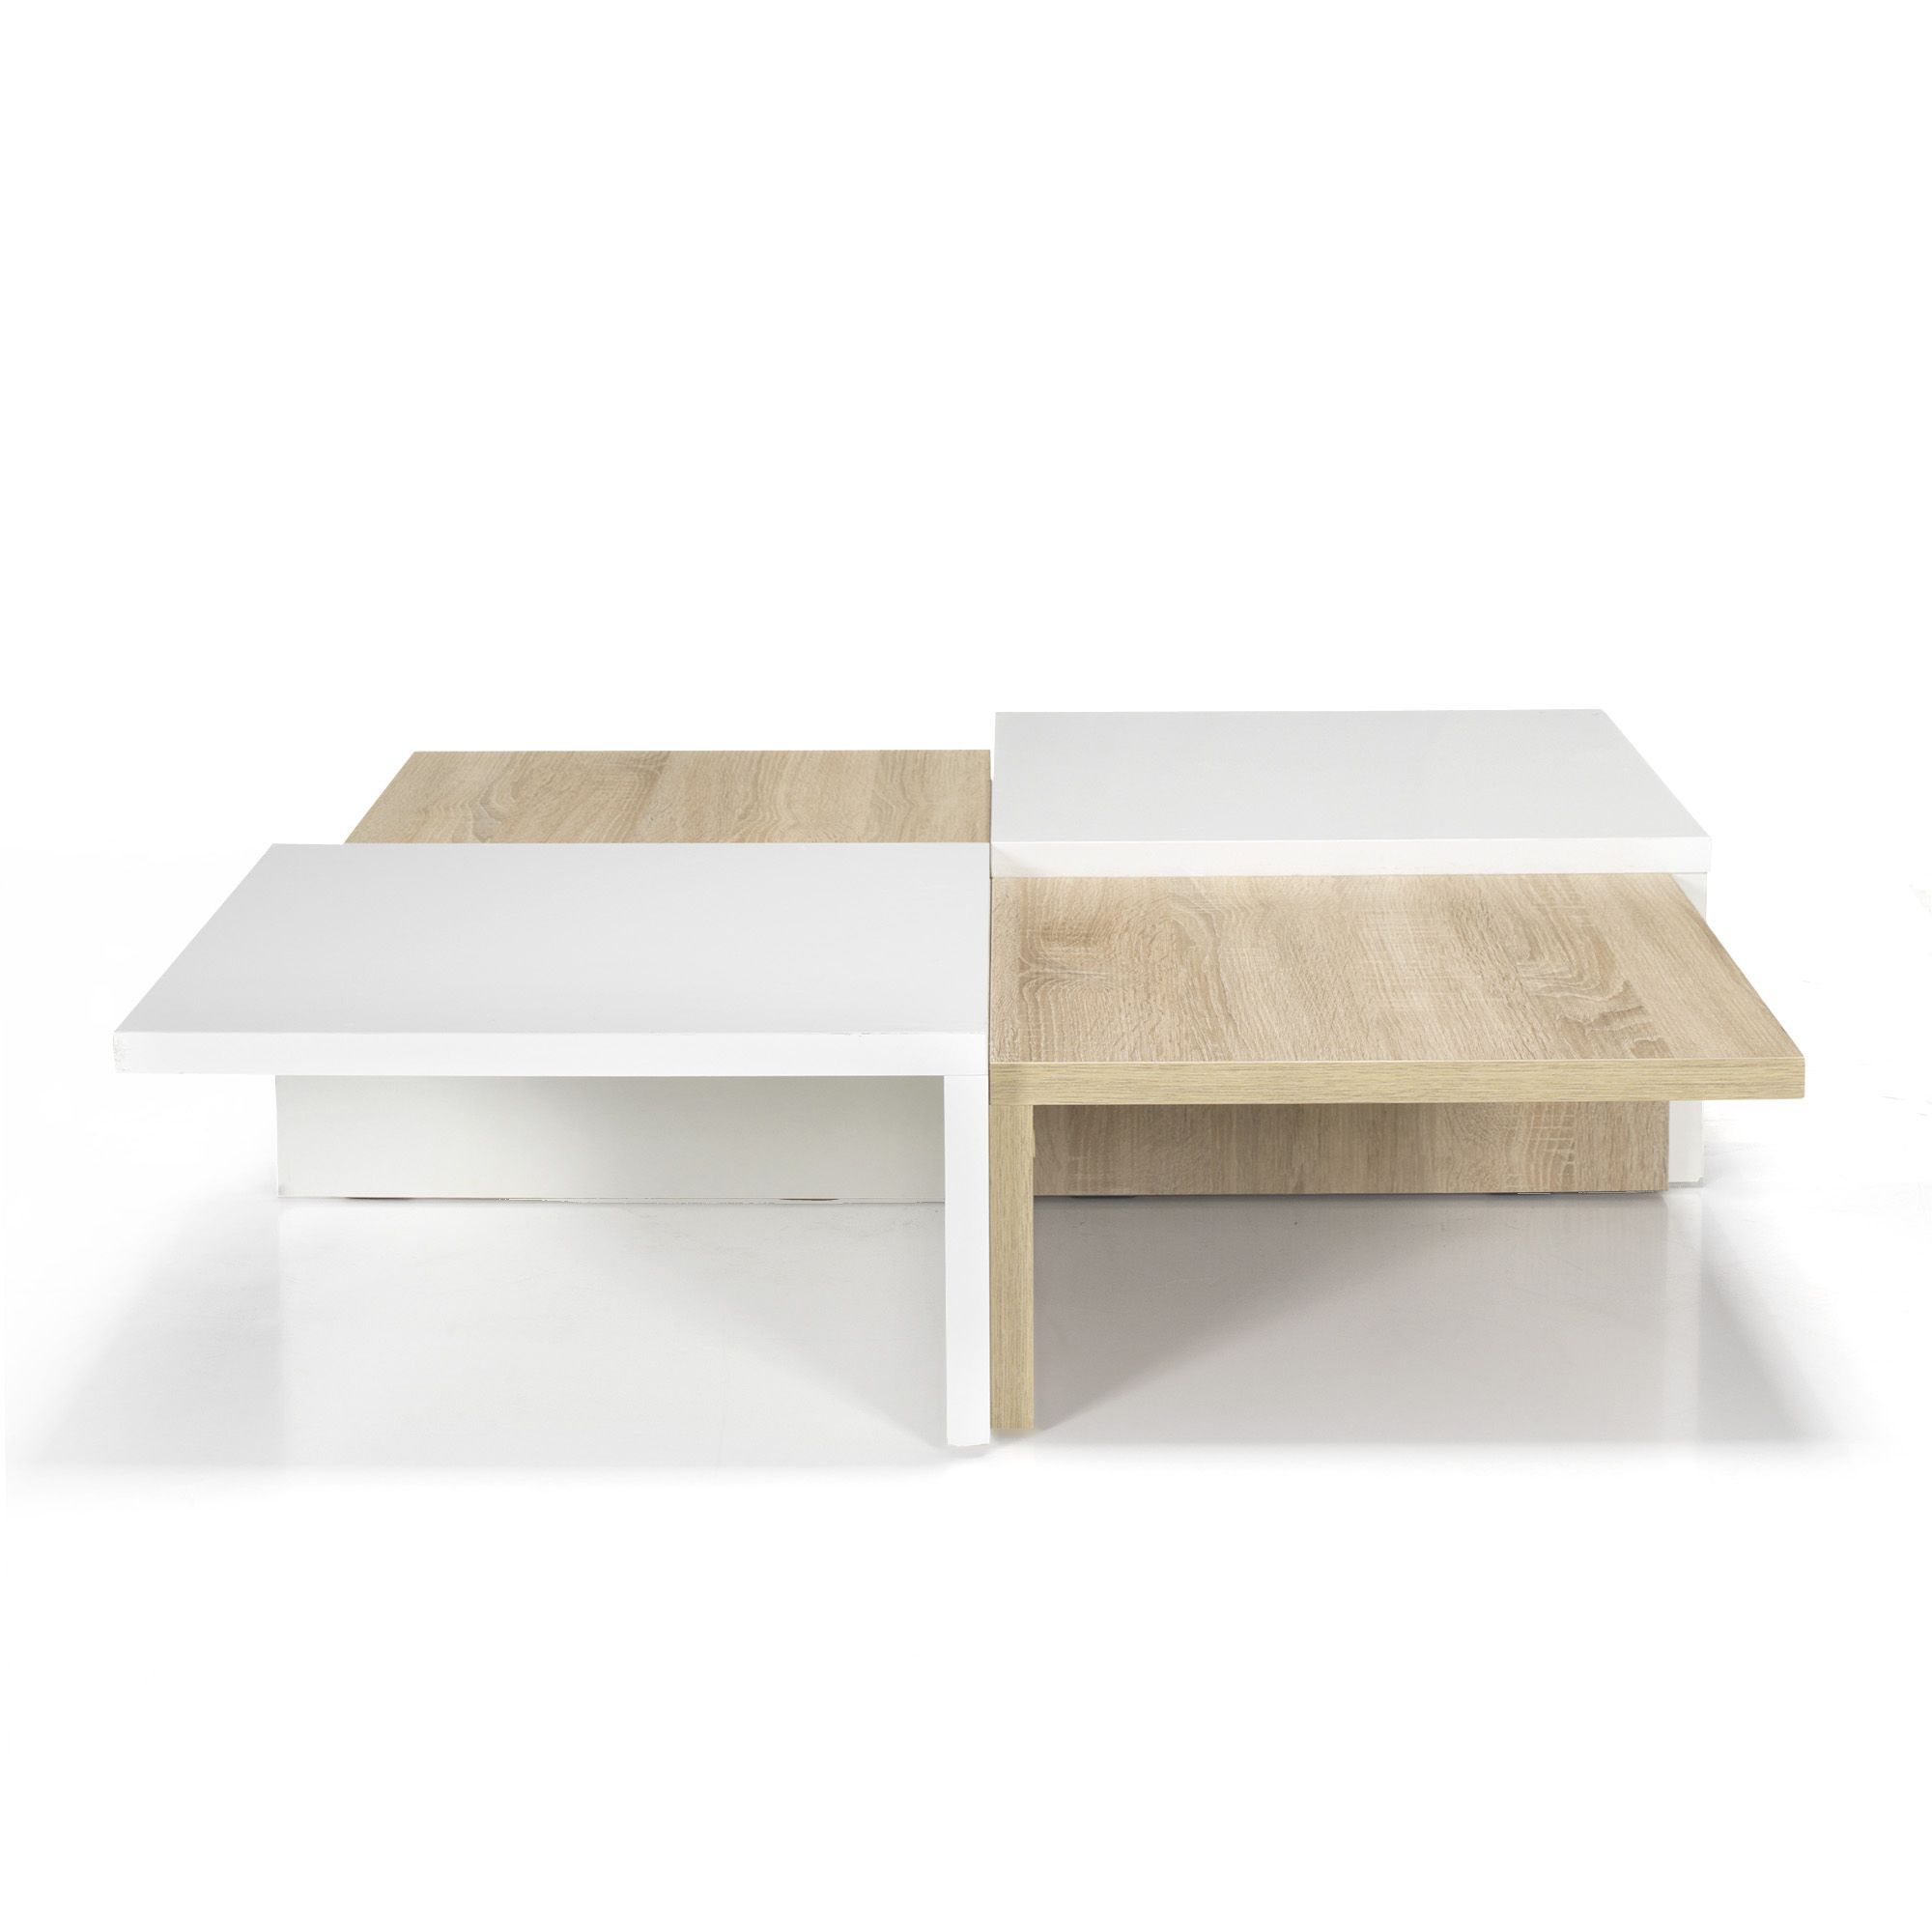 table basse carr e design scandinave blanc naturel. Black Bedroom Furniture Sets. Home Design Ideas